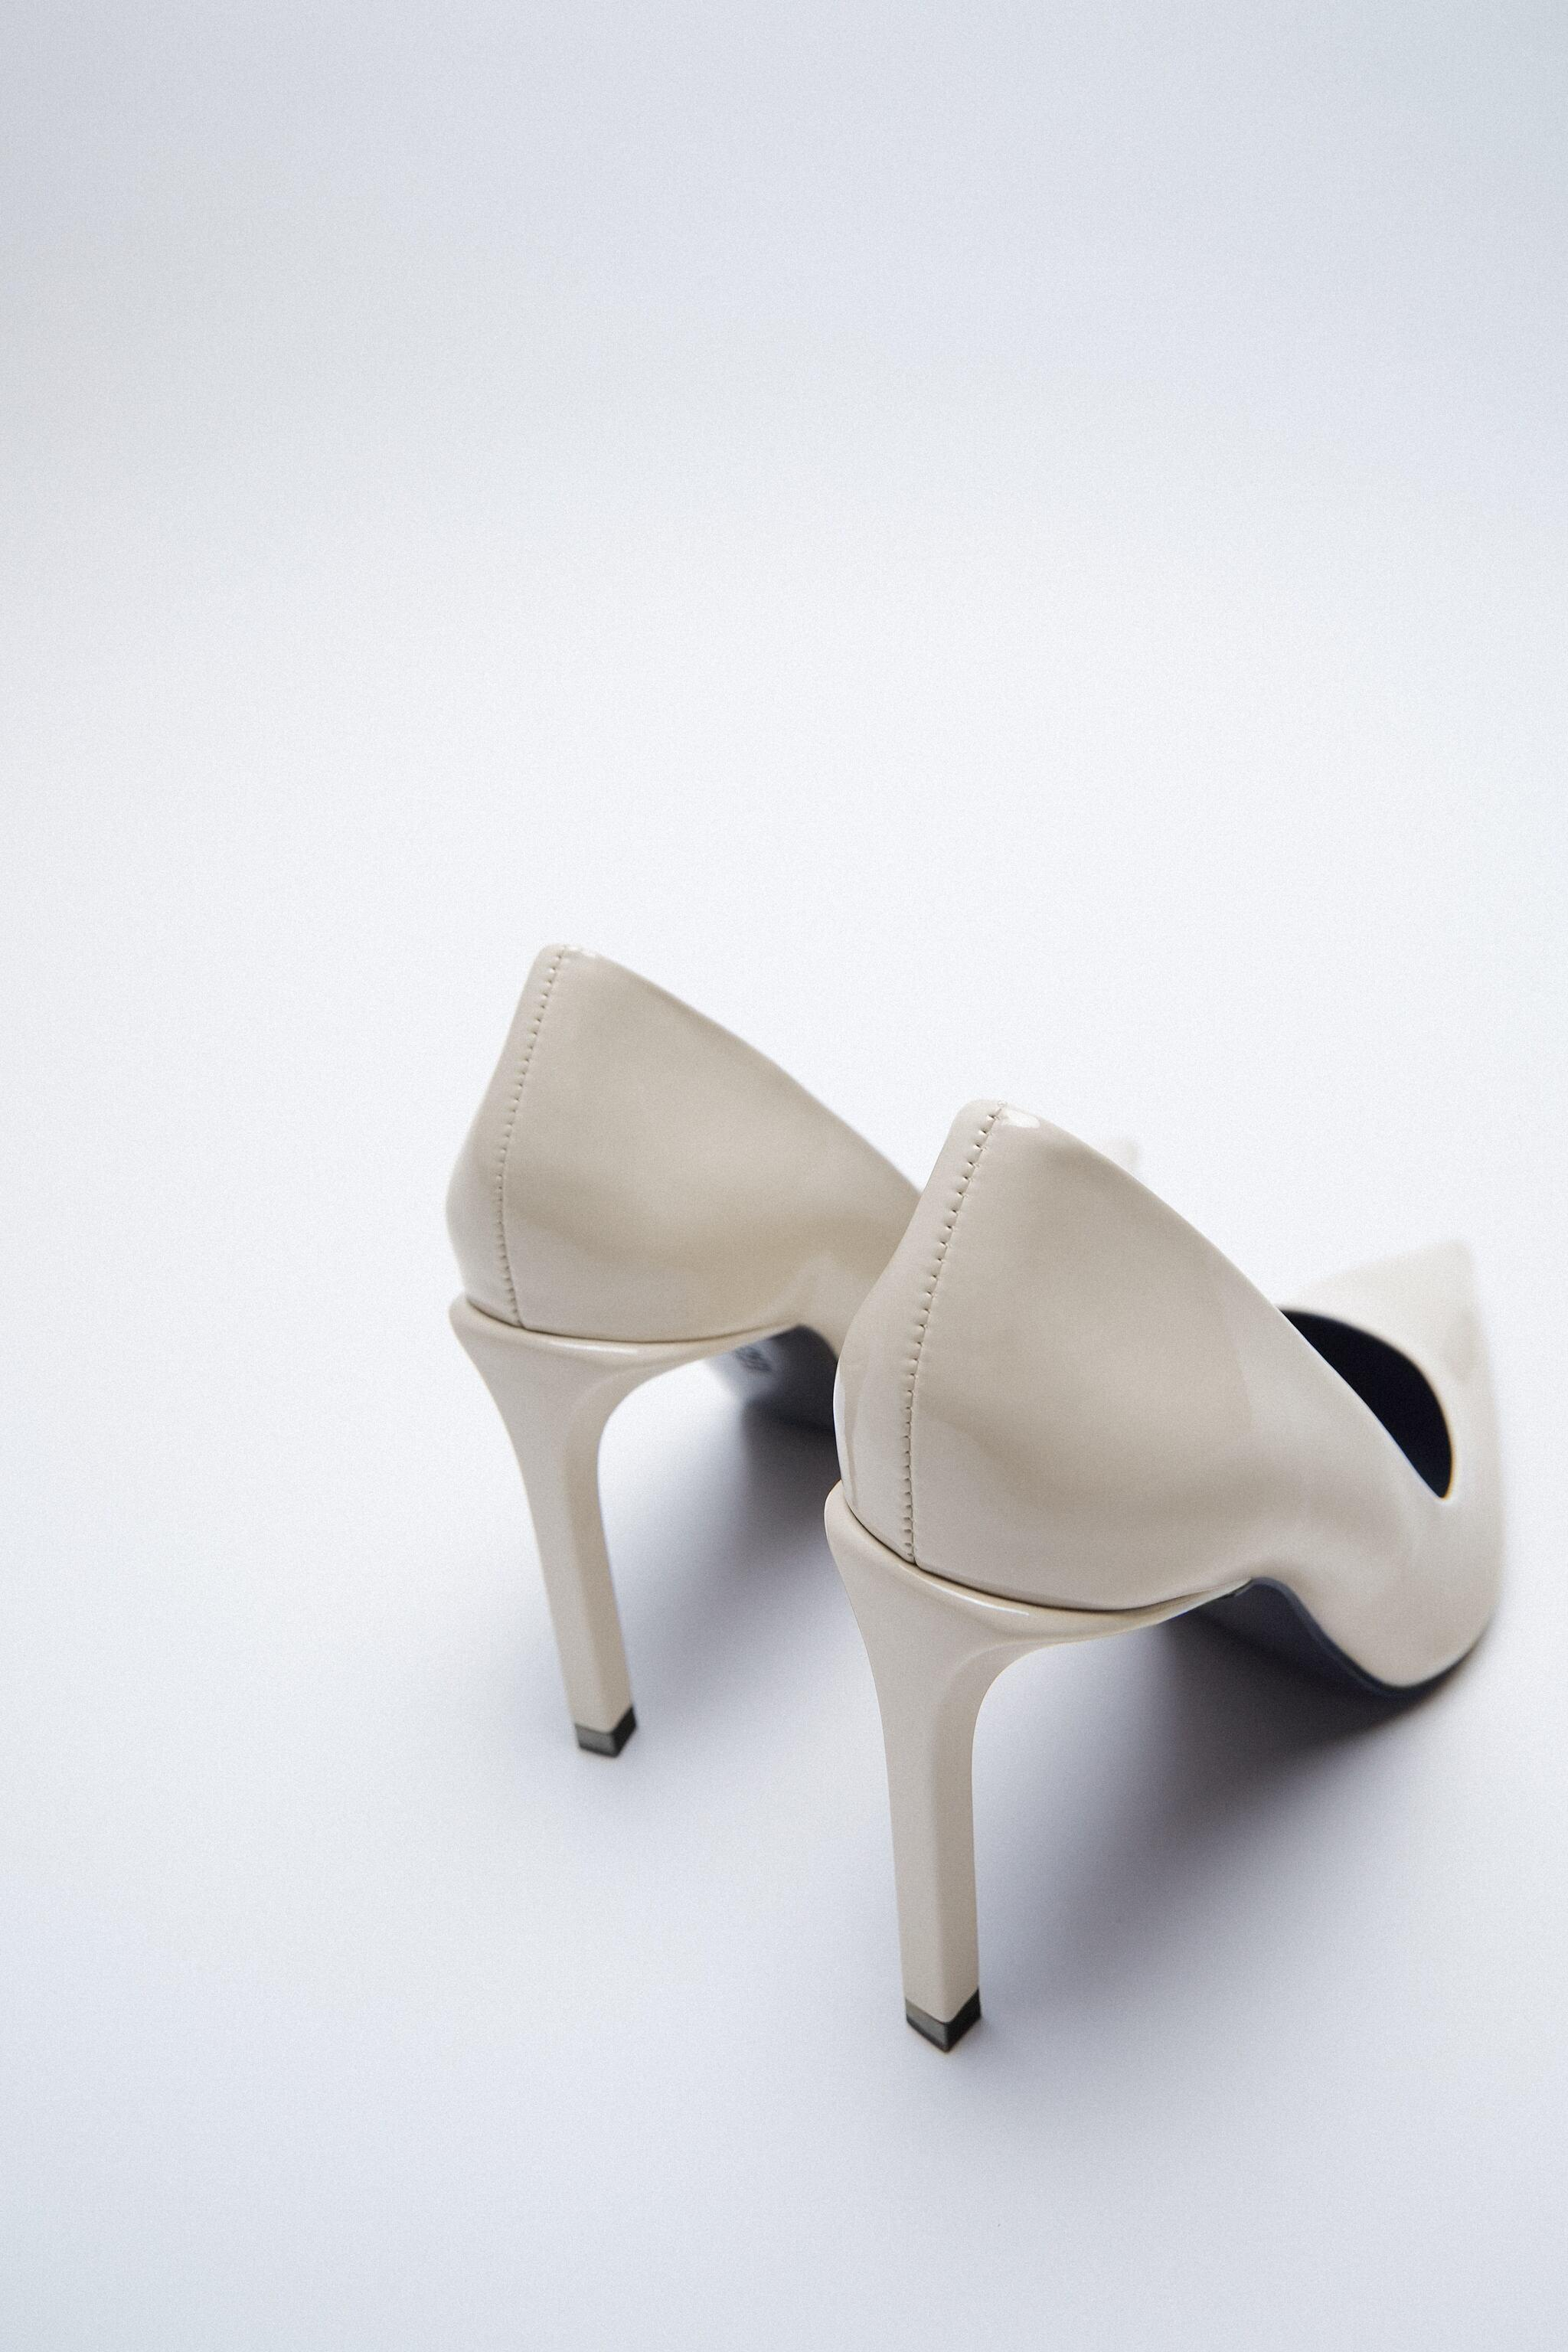 PATENT FINISH POINTED TOE HEELS 6